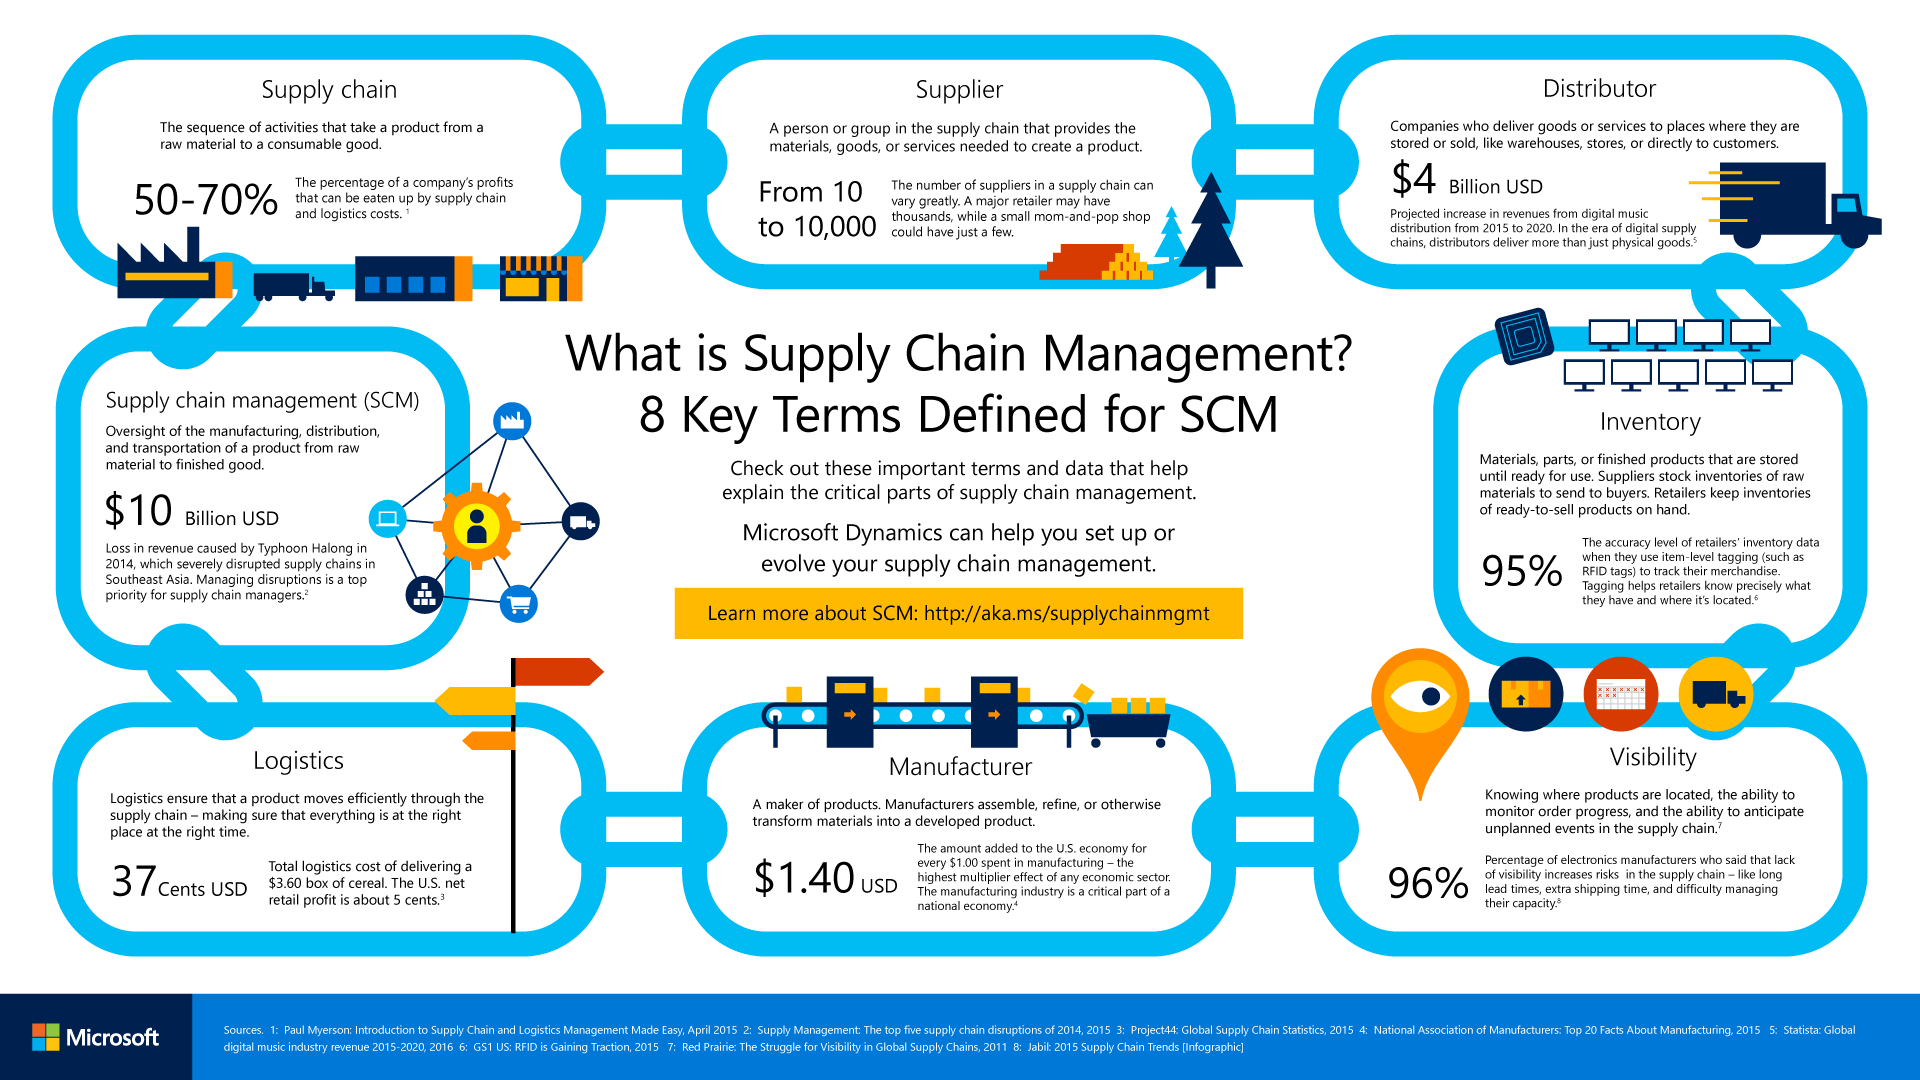 Why do Warehouse exists in Supply Chain?